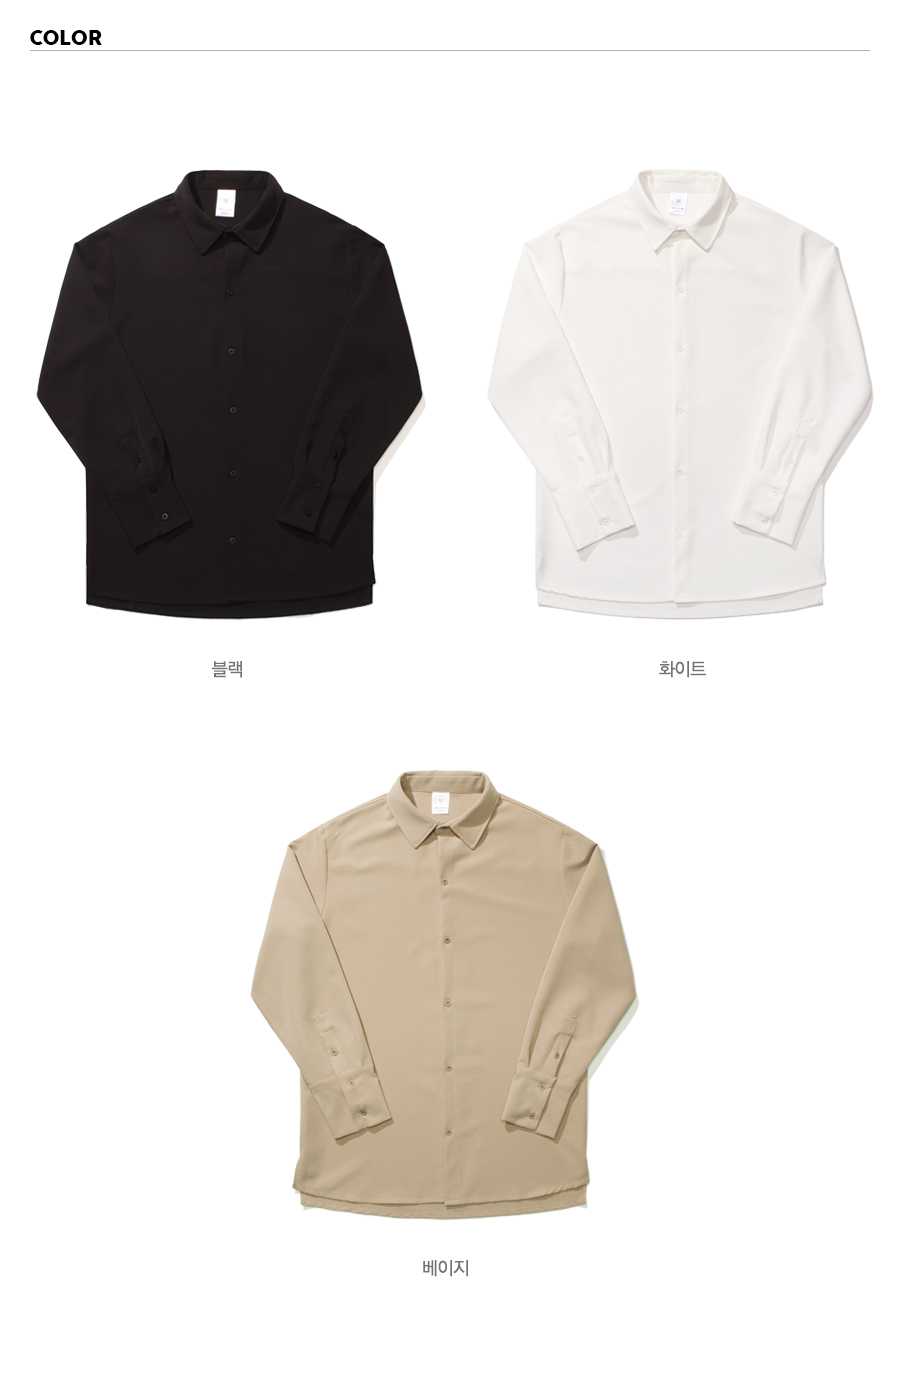 20180219_cuffs_overfit_shirts_color_sy.jpg